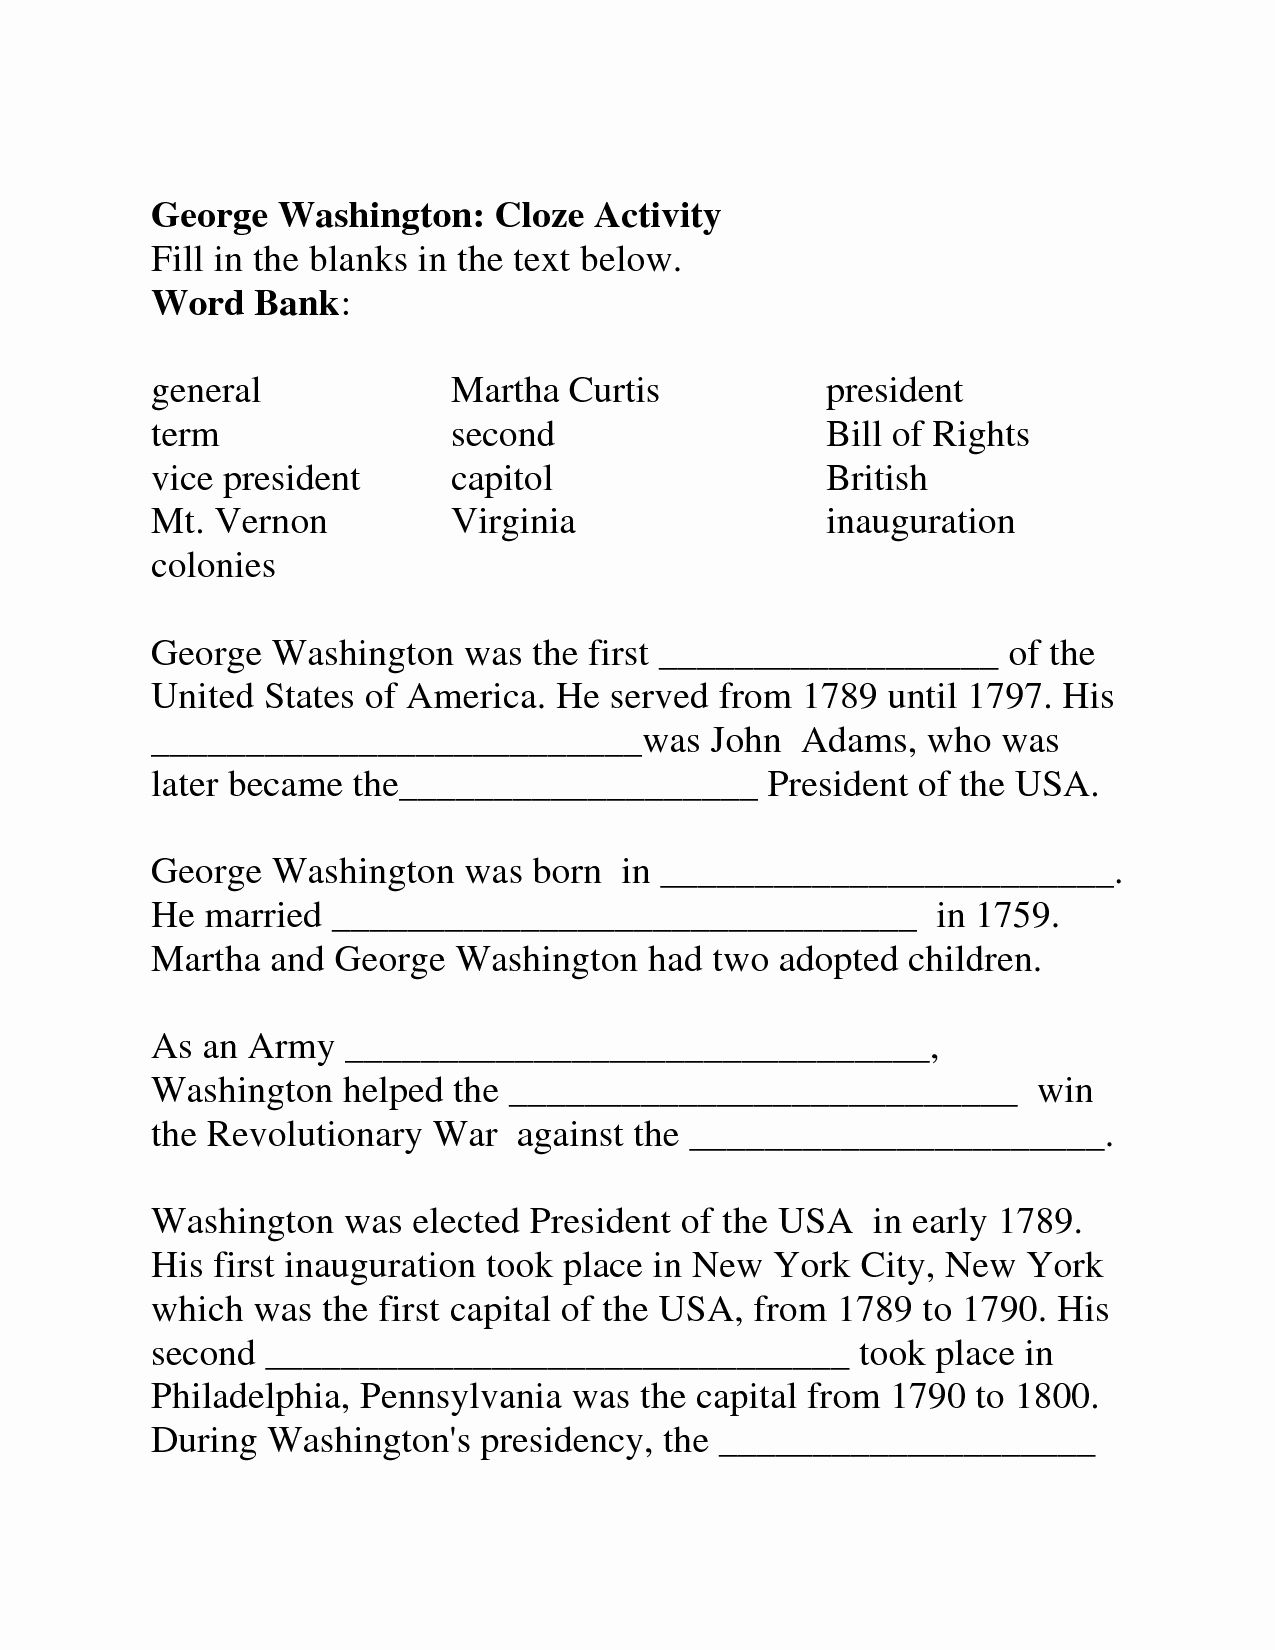 I Have Rights Worksheet Fresh I Have Rights Fill In The Blank Worksheet Answers In 2020 Cloze Activity Worksheets Word Bank